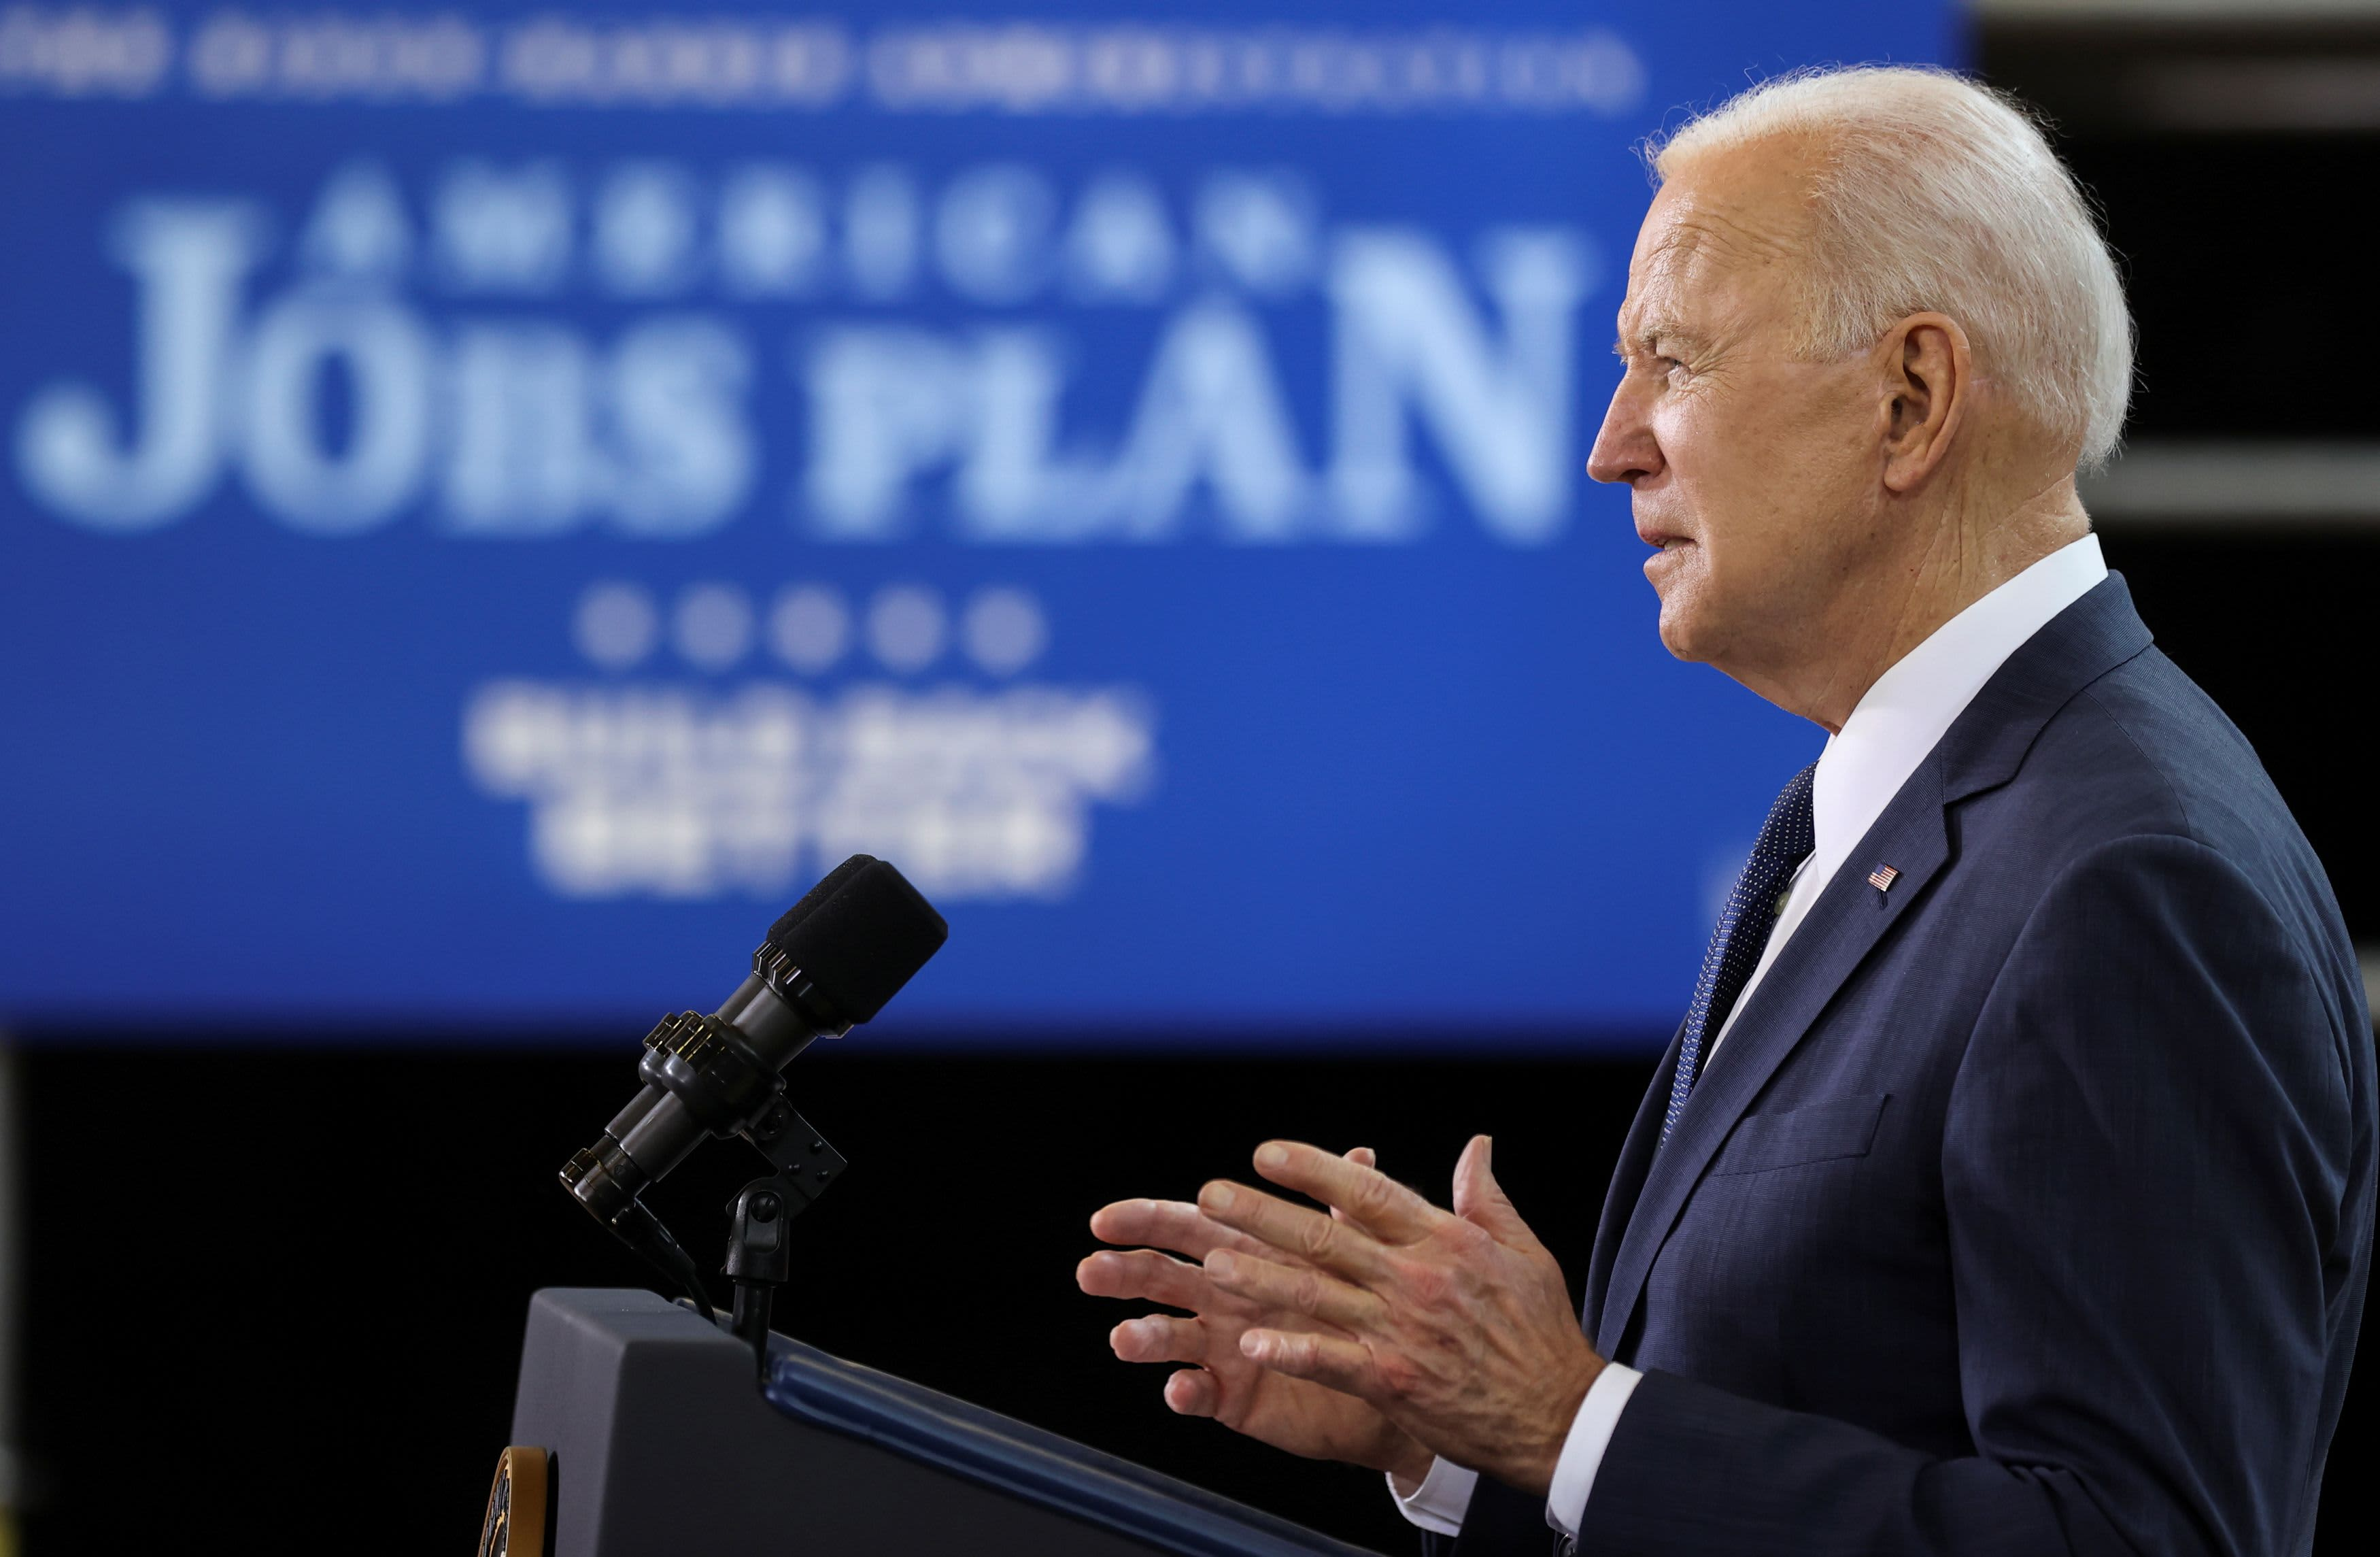 Micron, QuantumScape and Hyzon Motors CEOs react to Biden's plans for... image